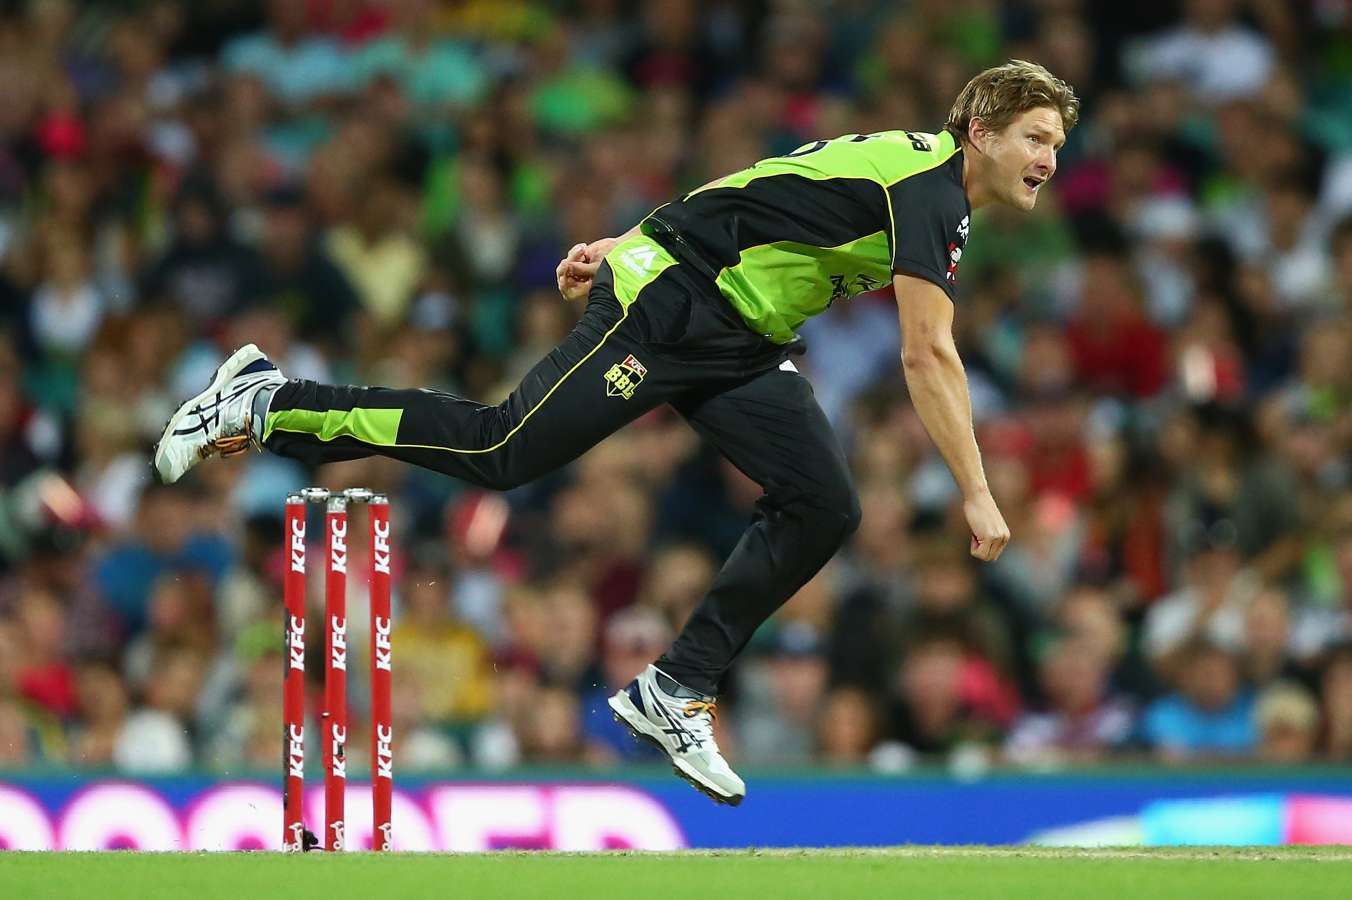 BBL Preview: Sydney Thunder vs Perth Scorchers